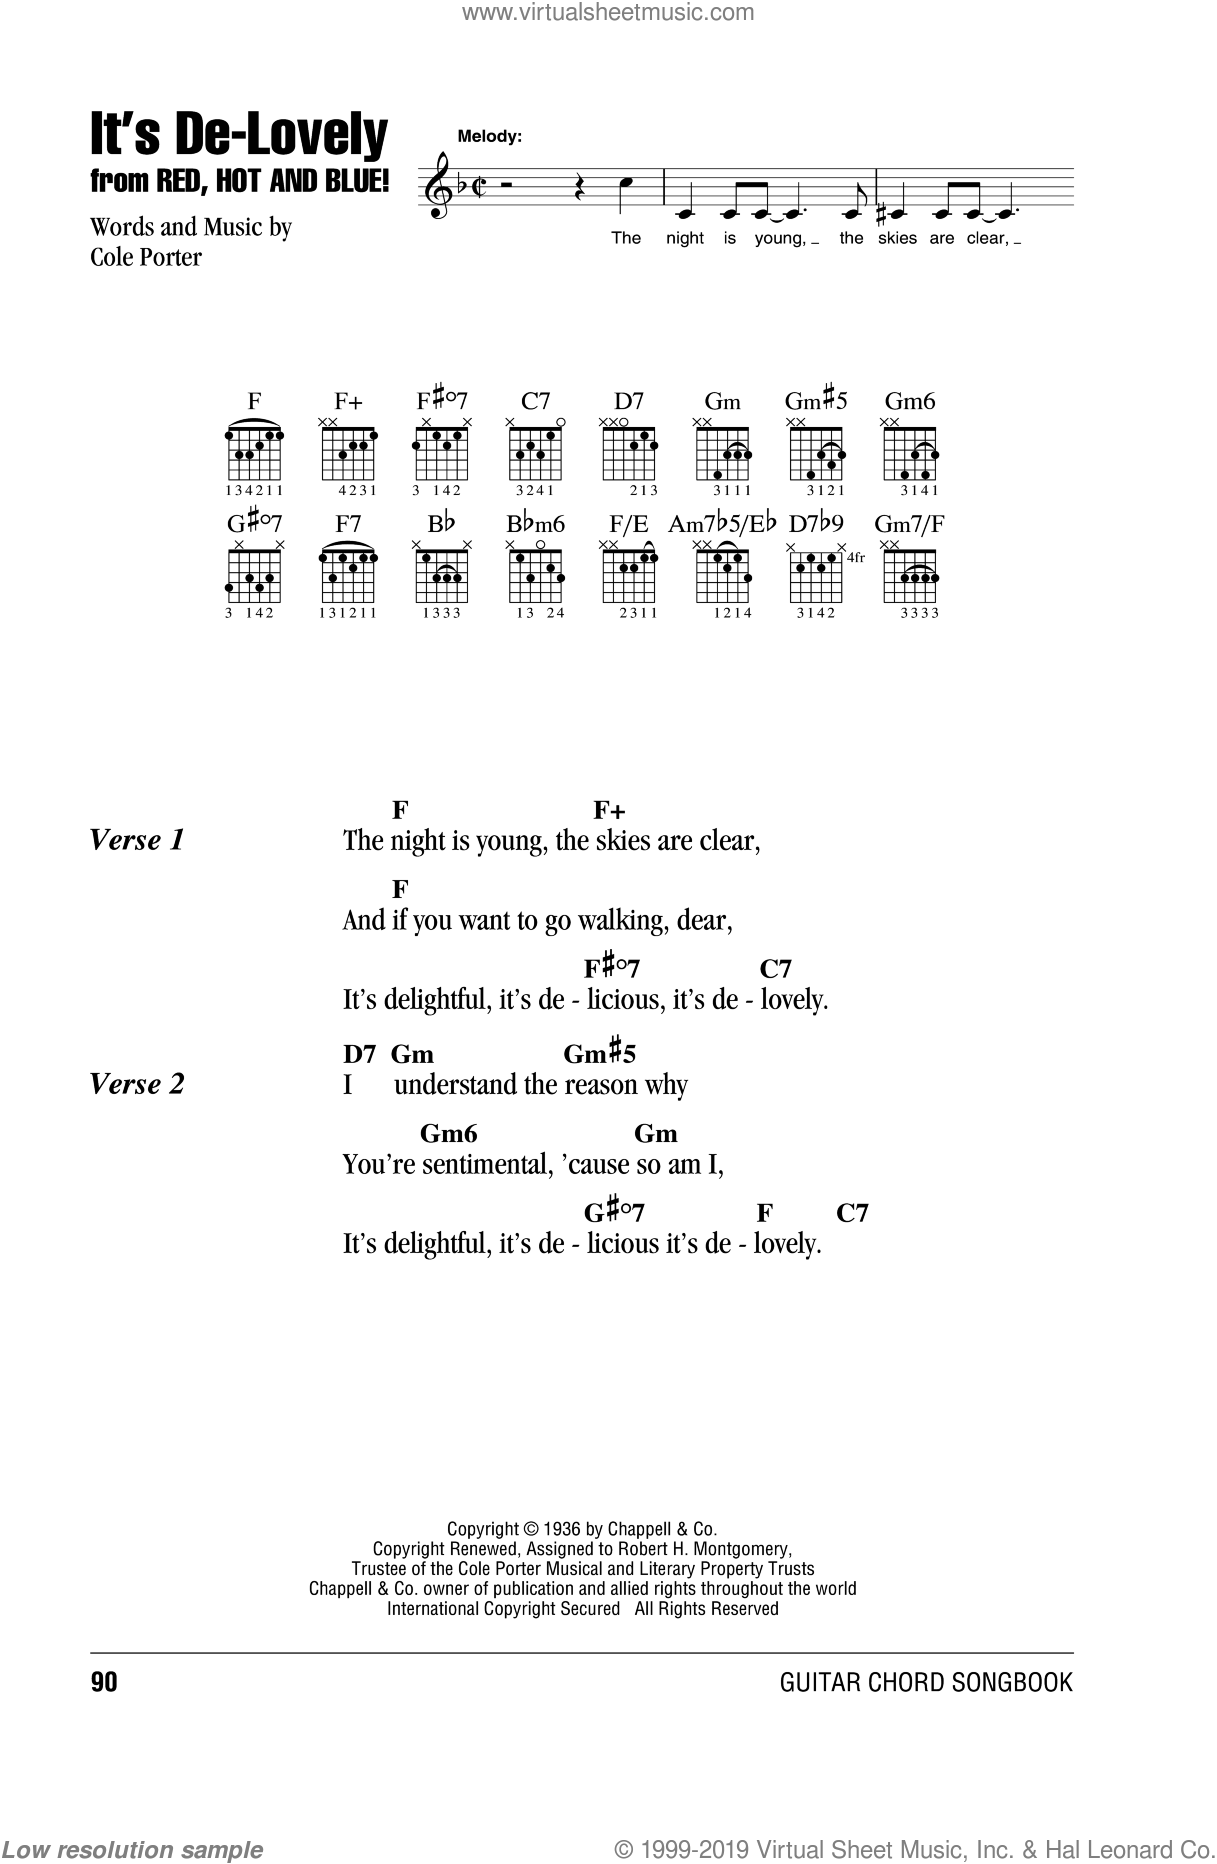 It's De-Lovely sheet music for guitar (chords) by Cole Porter, intermediate skill level